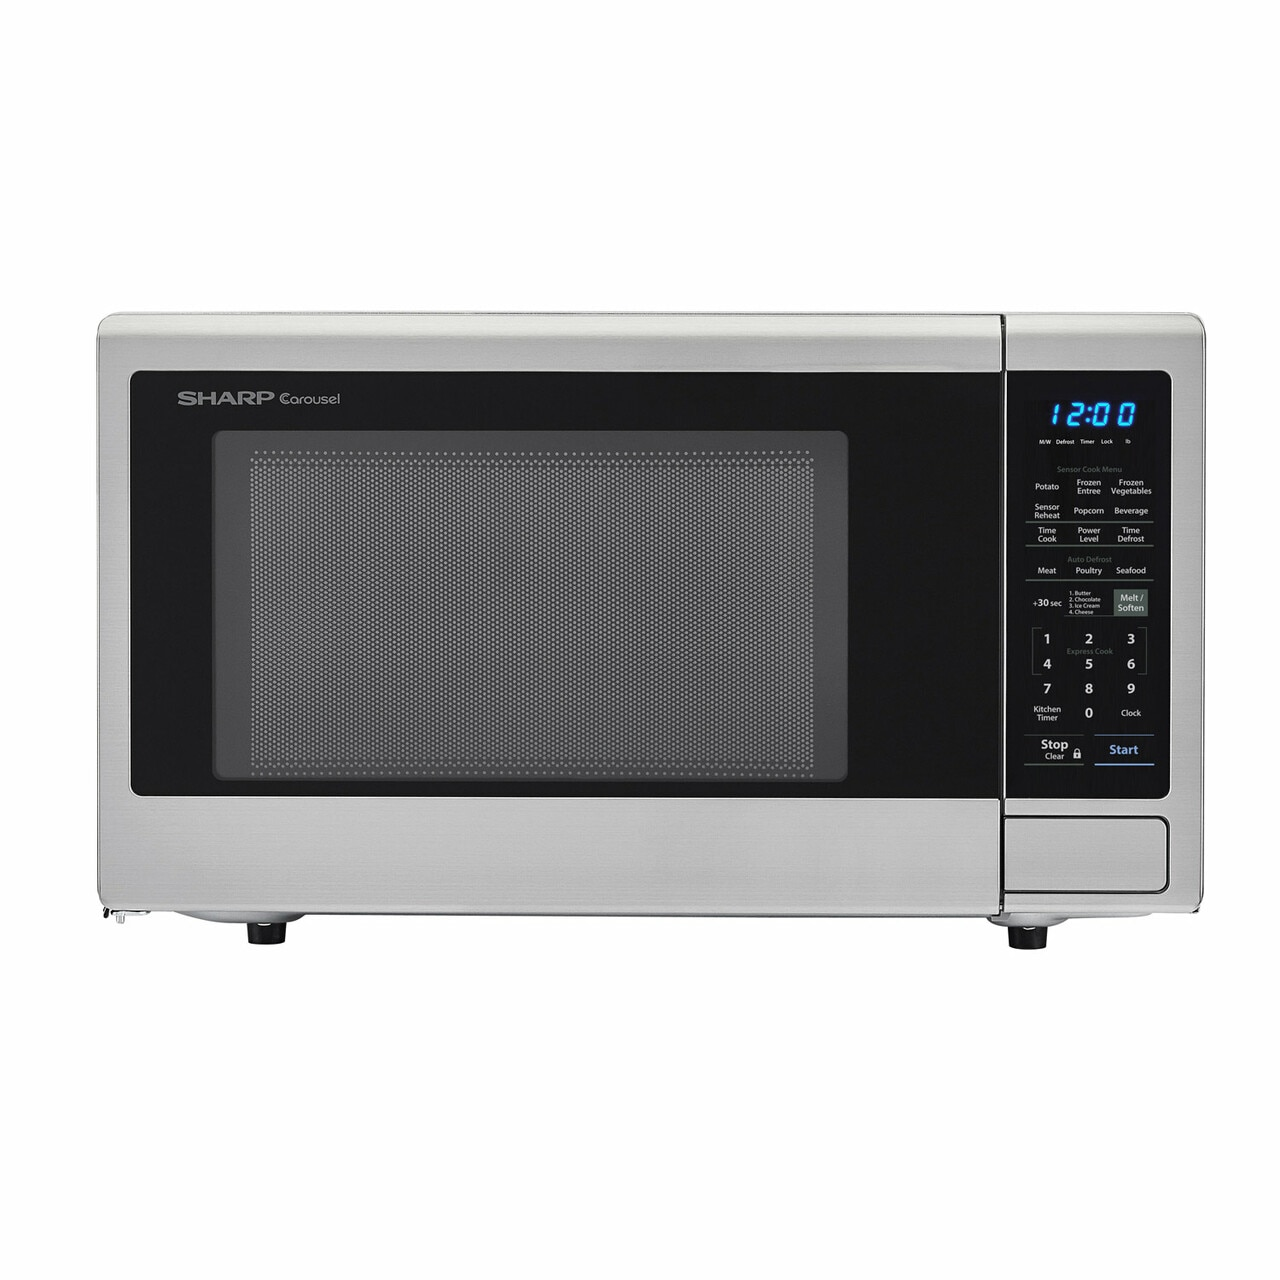 1.8 cu. ft. Sharp Stainless Steel Countertop Microwave (SMC1842CS)